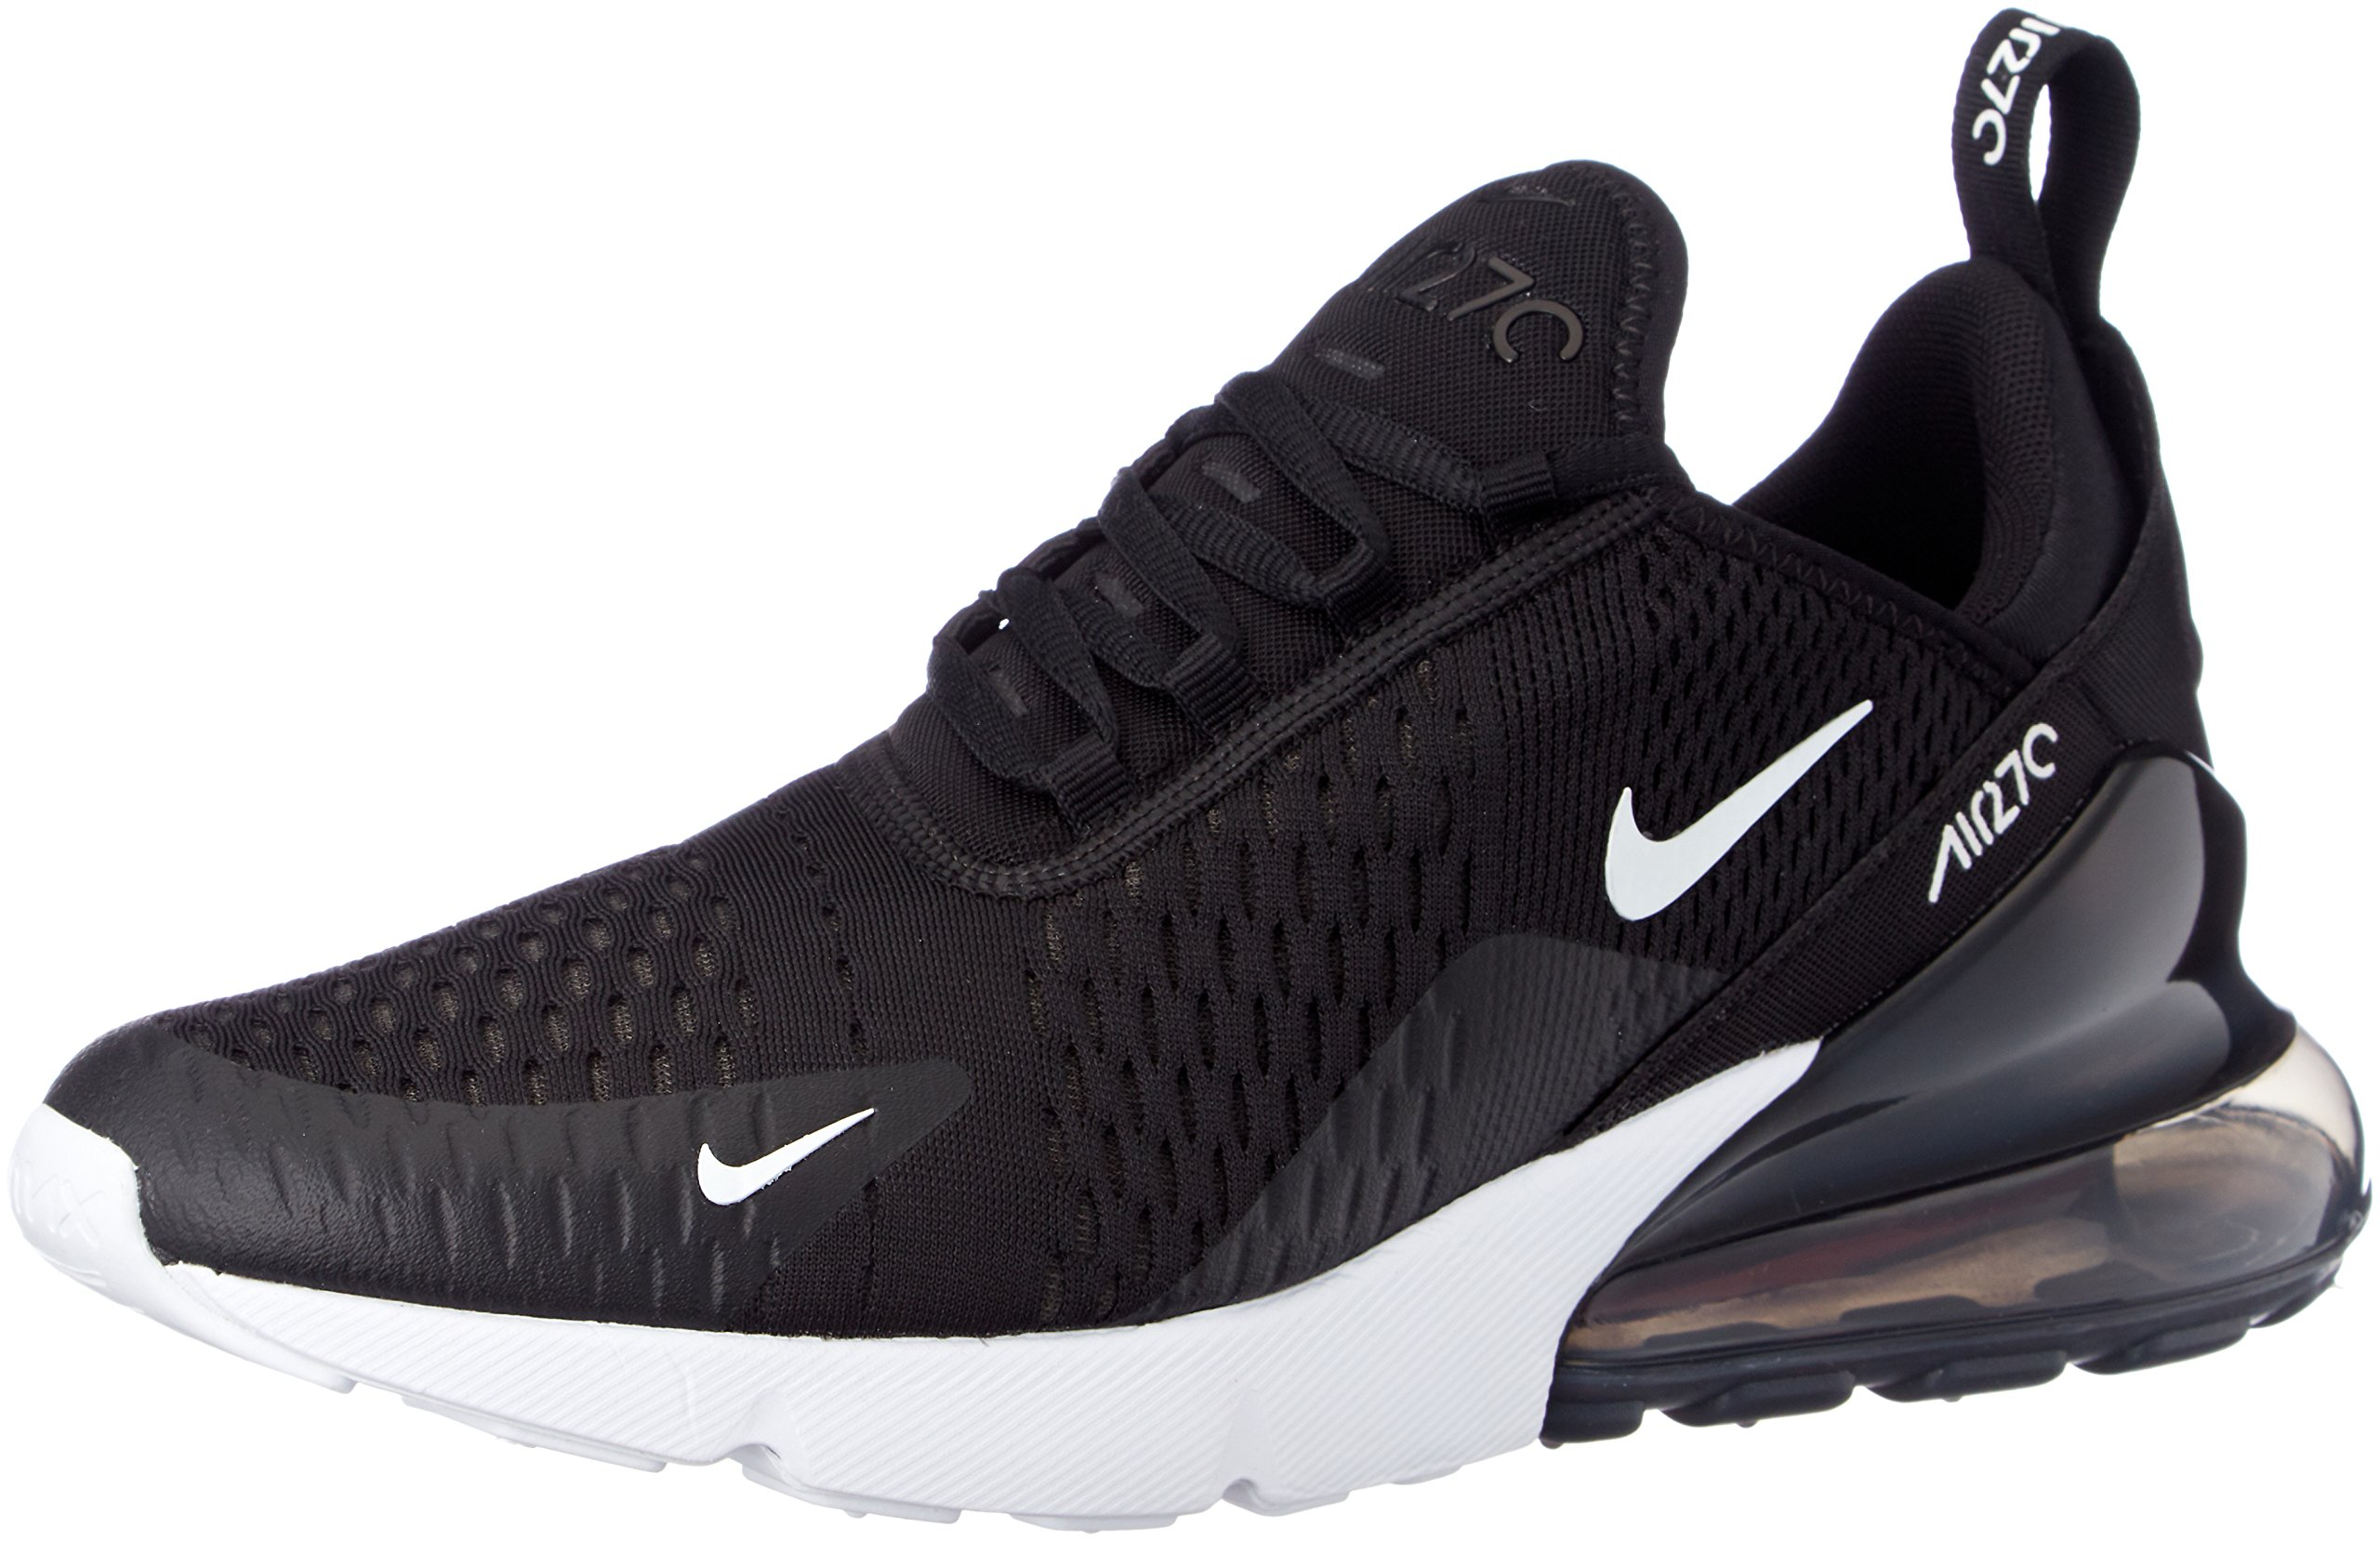 sale retailer 4865e 5e111 Nike Air Max 270 Mens Casual Shoes Black/Anthracite/White ah8050-002 (11.5  B(M) US)